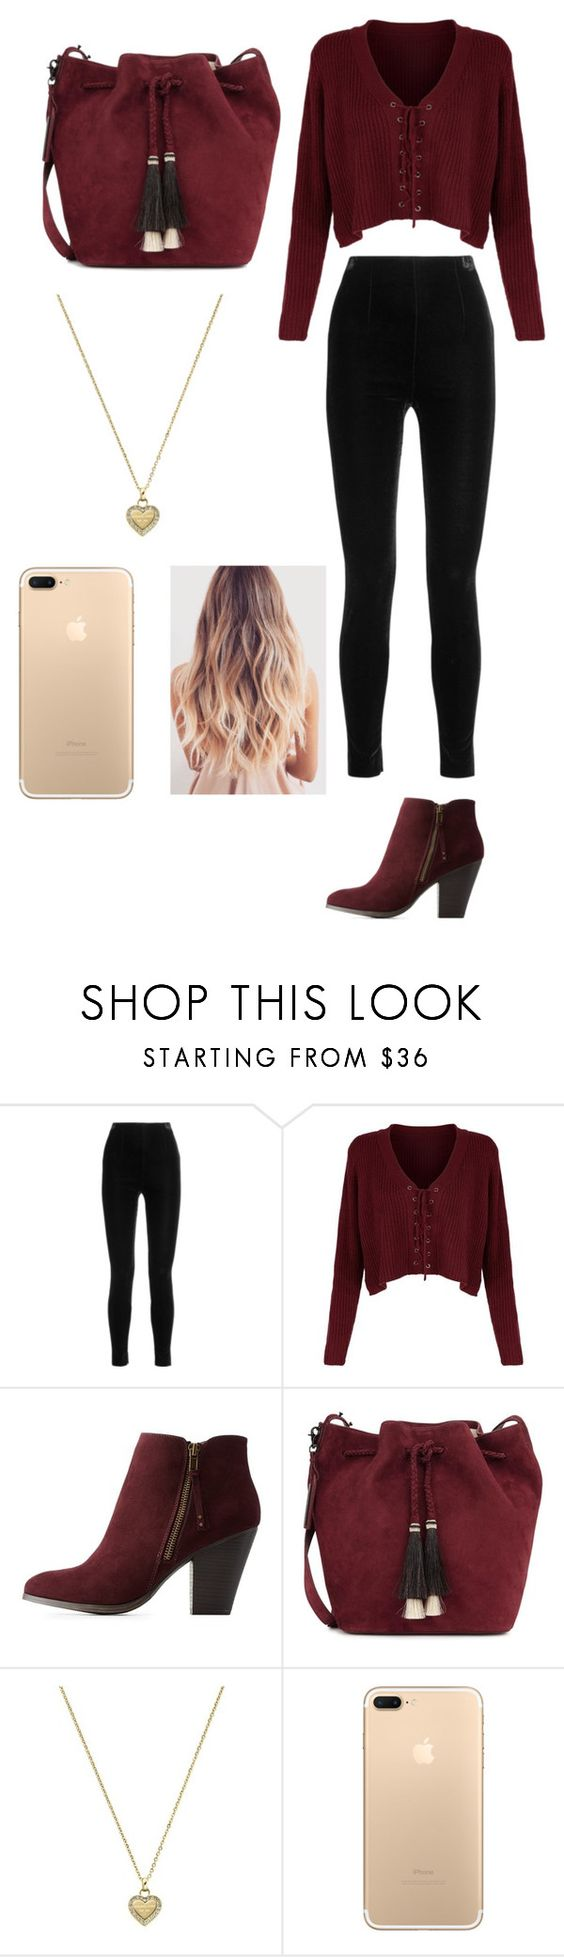 """Untitled #162"" by nashabriann ❤ liked on Polyvore featuring Balmain, Charlotte Russe, Loeffler Randall and Michael Kors"